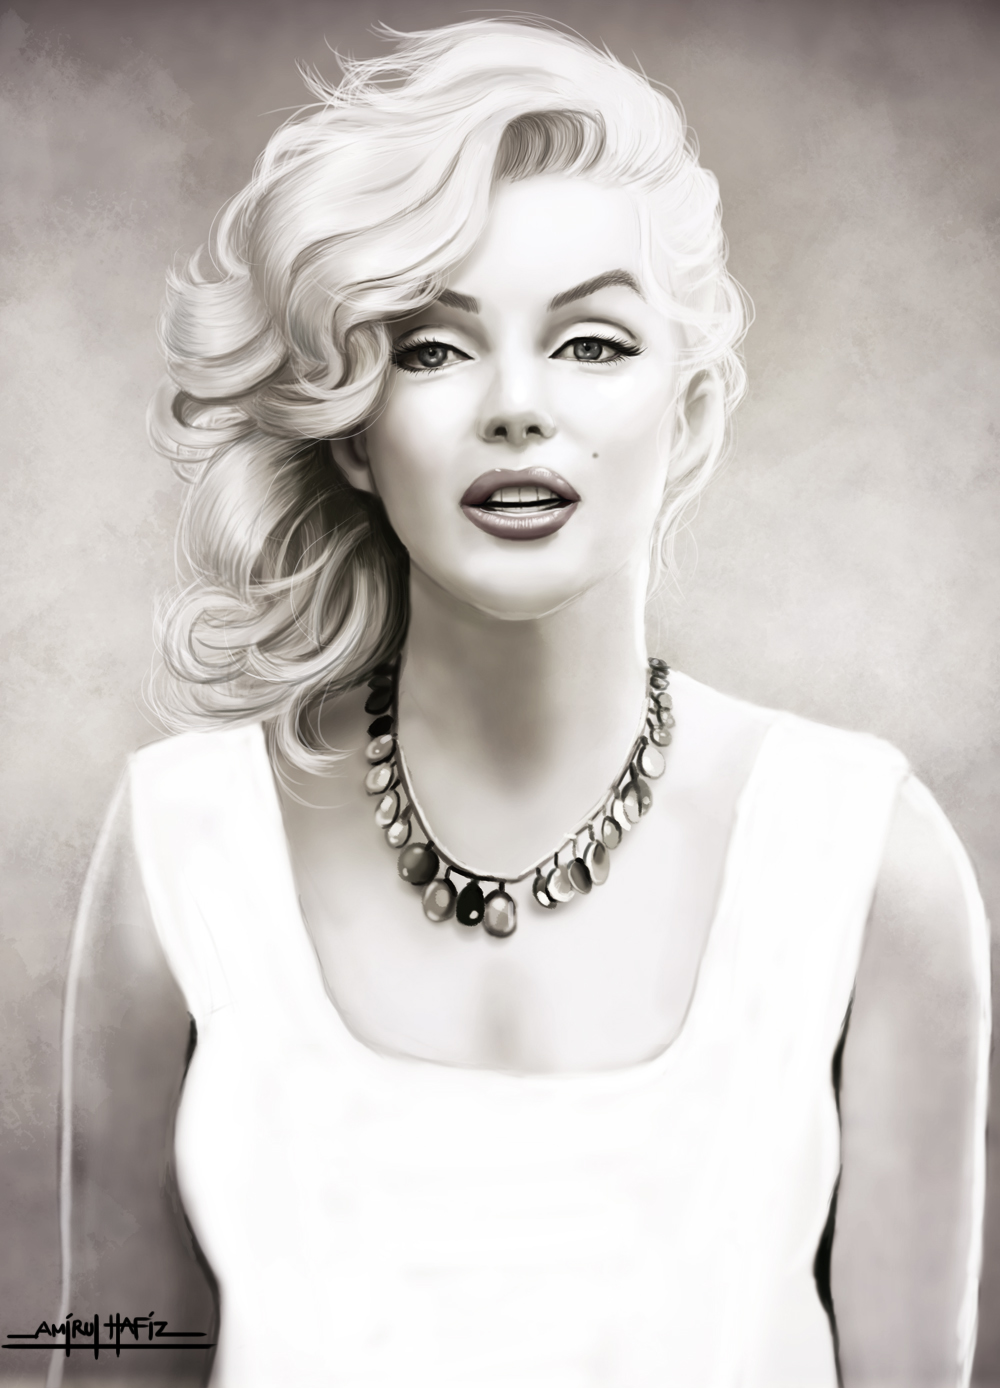 Marilyn Monroe By Amirulhafiz On Deviantart